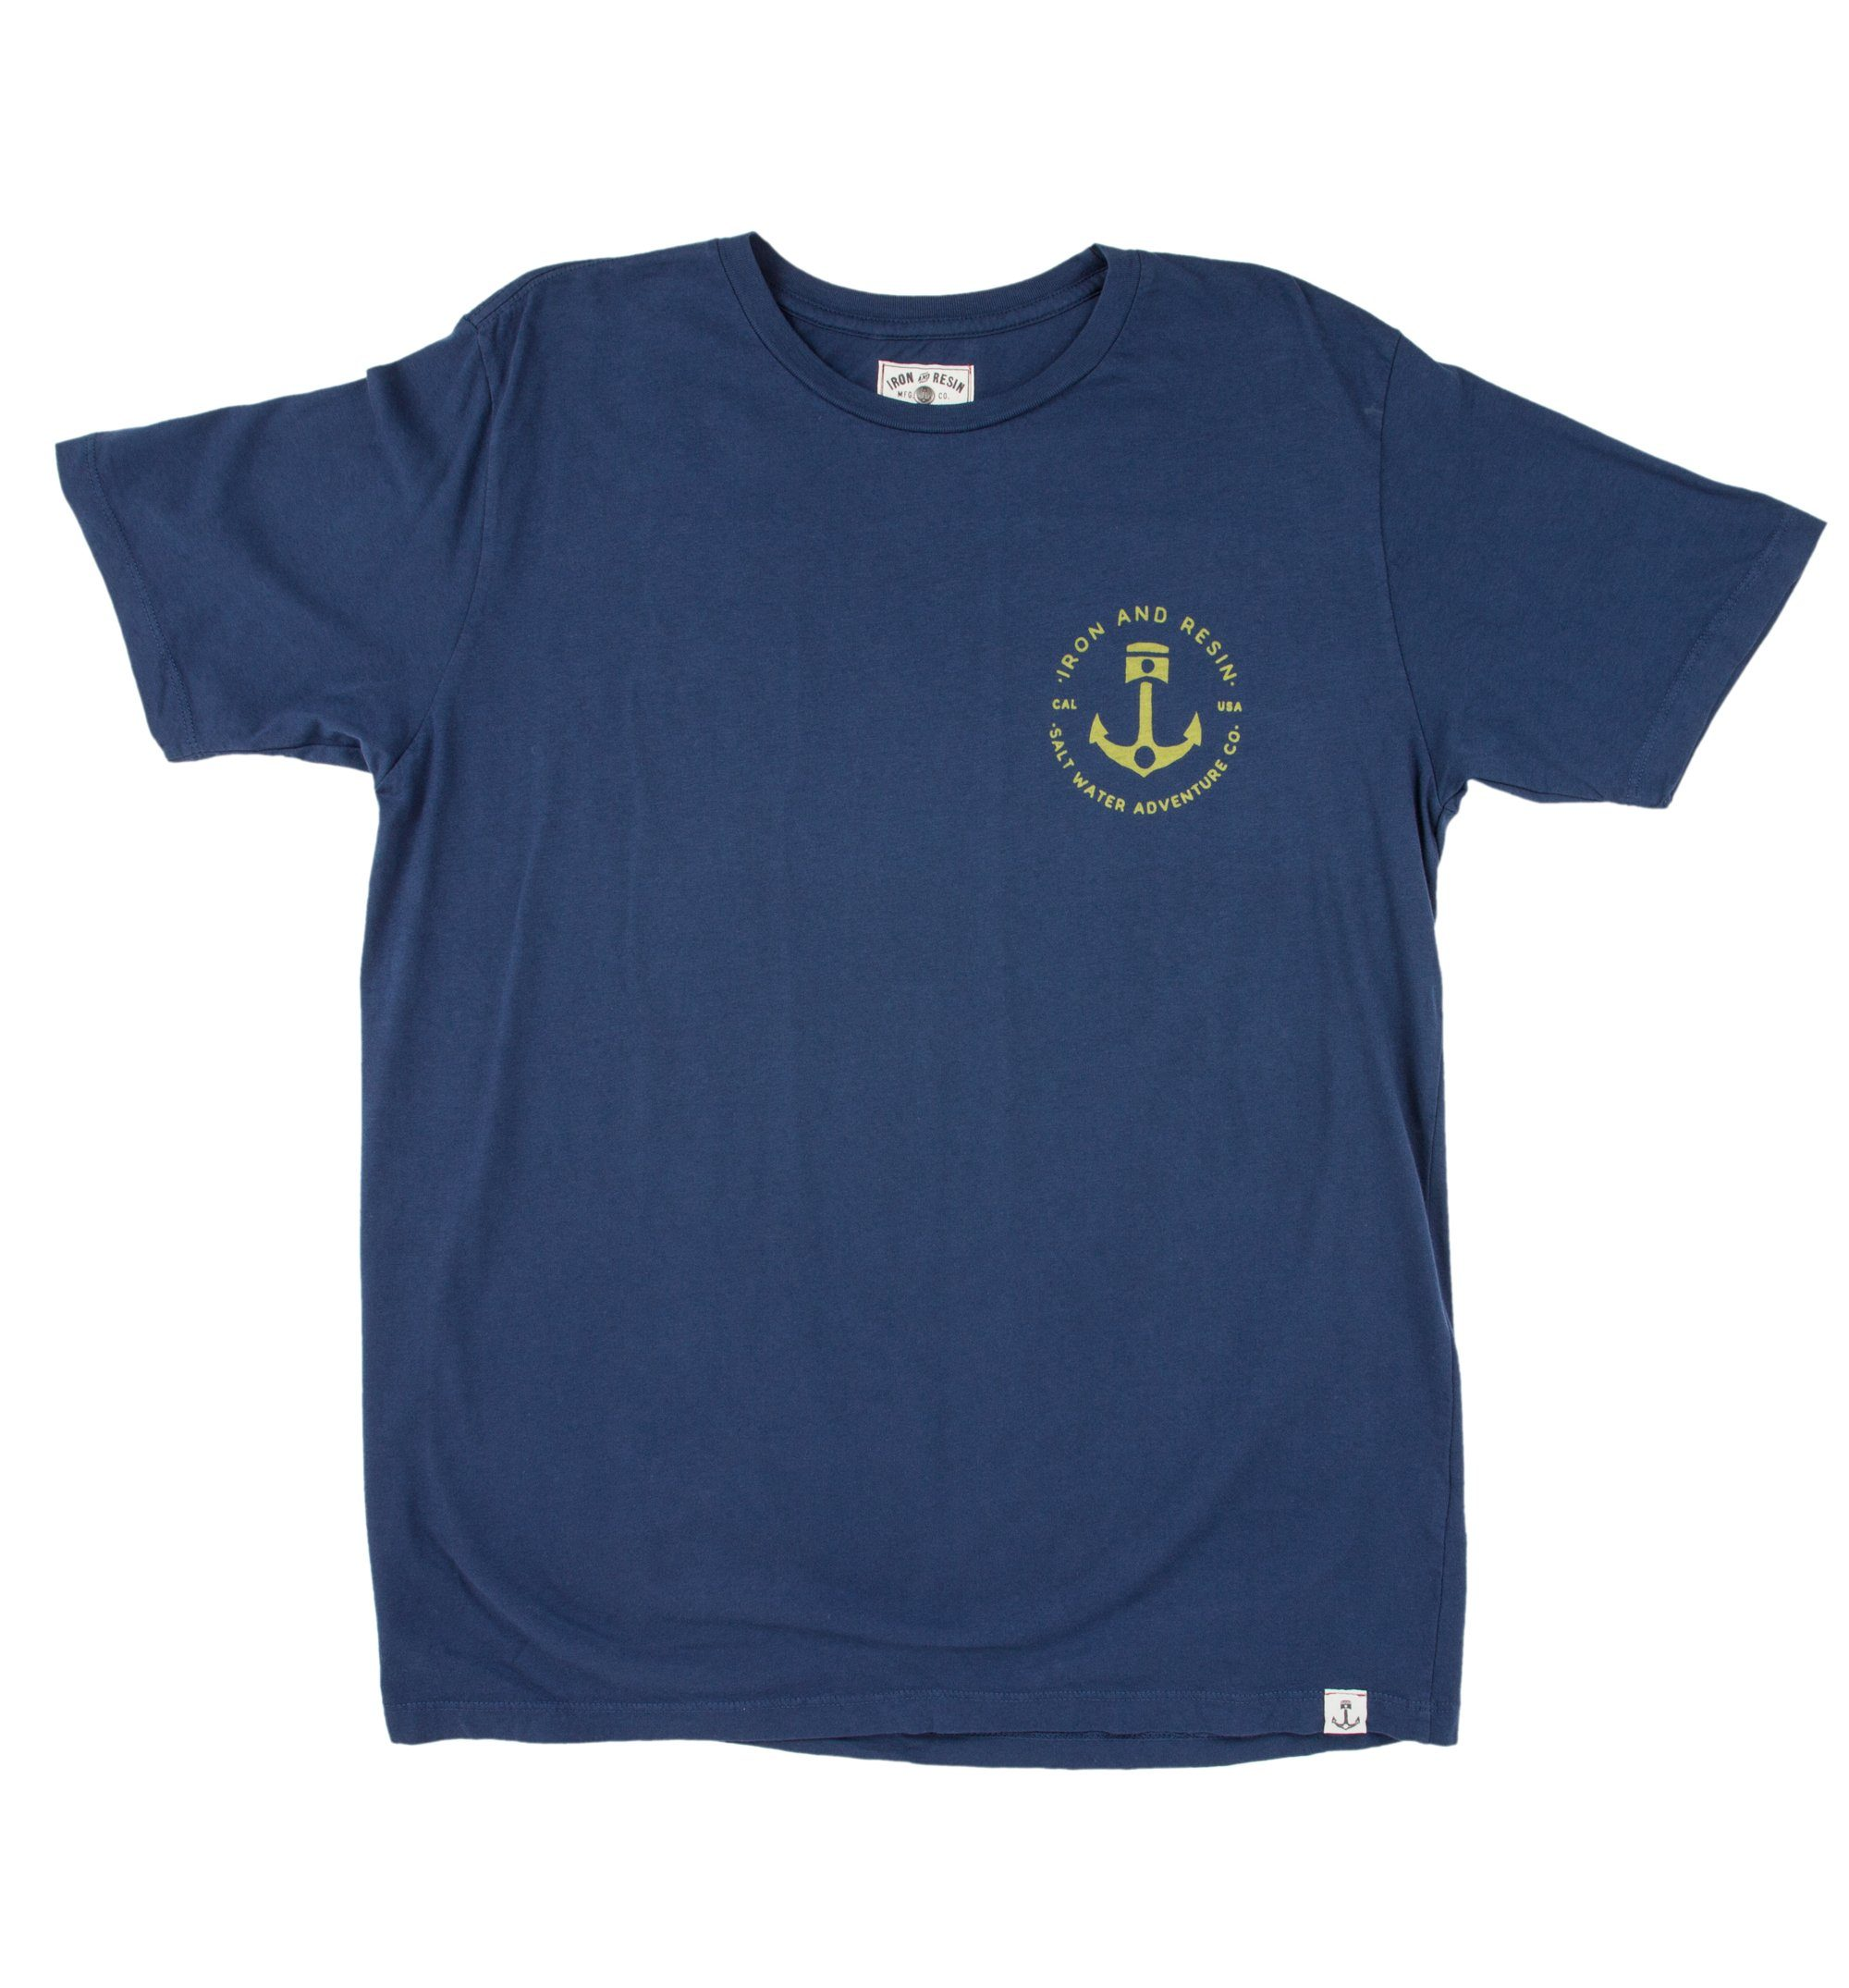 Salt Water Adventure Co Tee - Tops - Iron and Resin